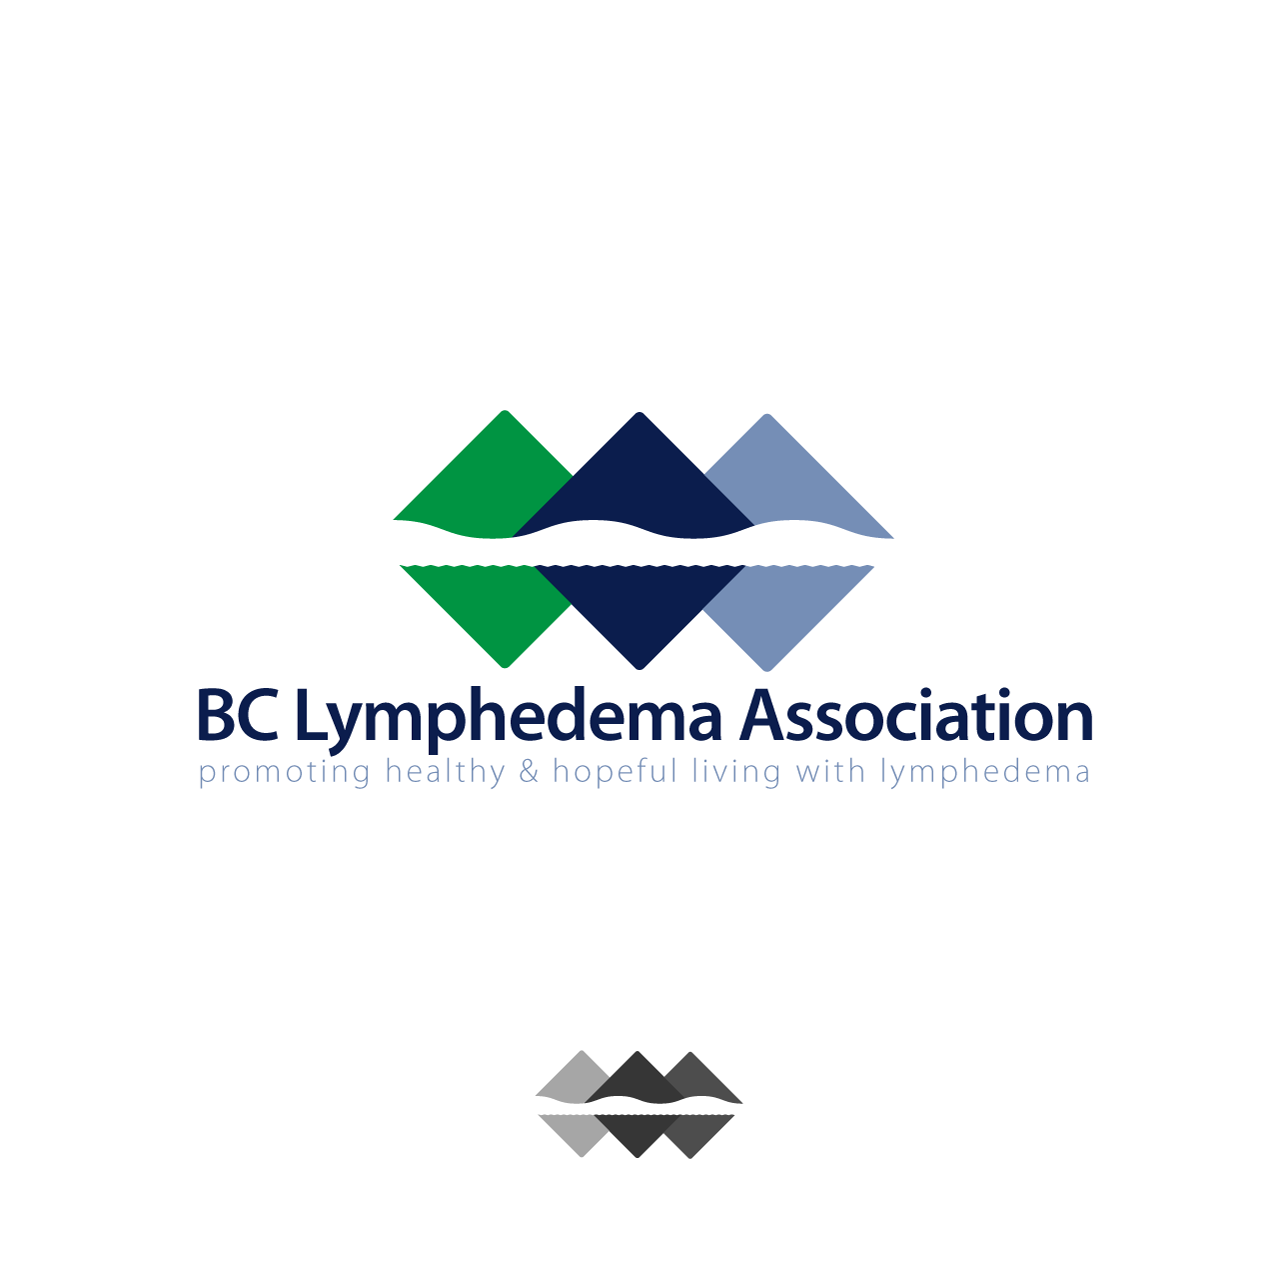 Logo Design by umxca - Entry No. 36 in the Logo Design Contest BC Lymphedema Association.